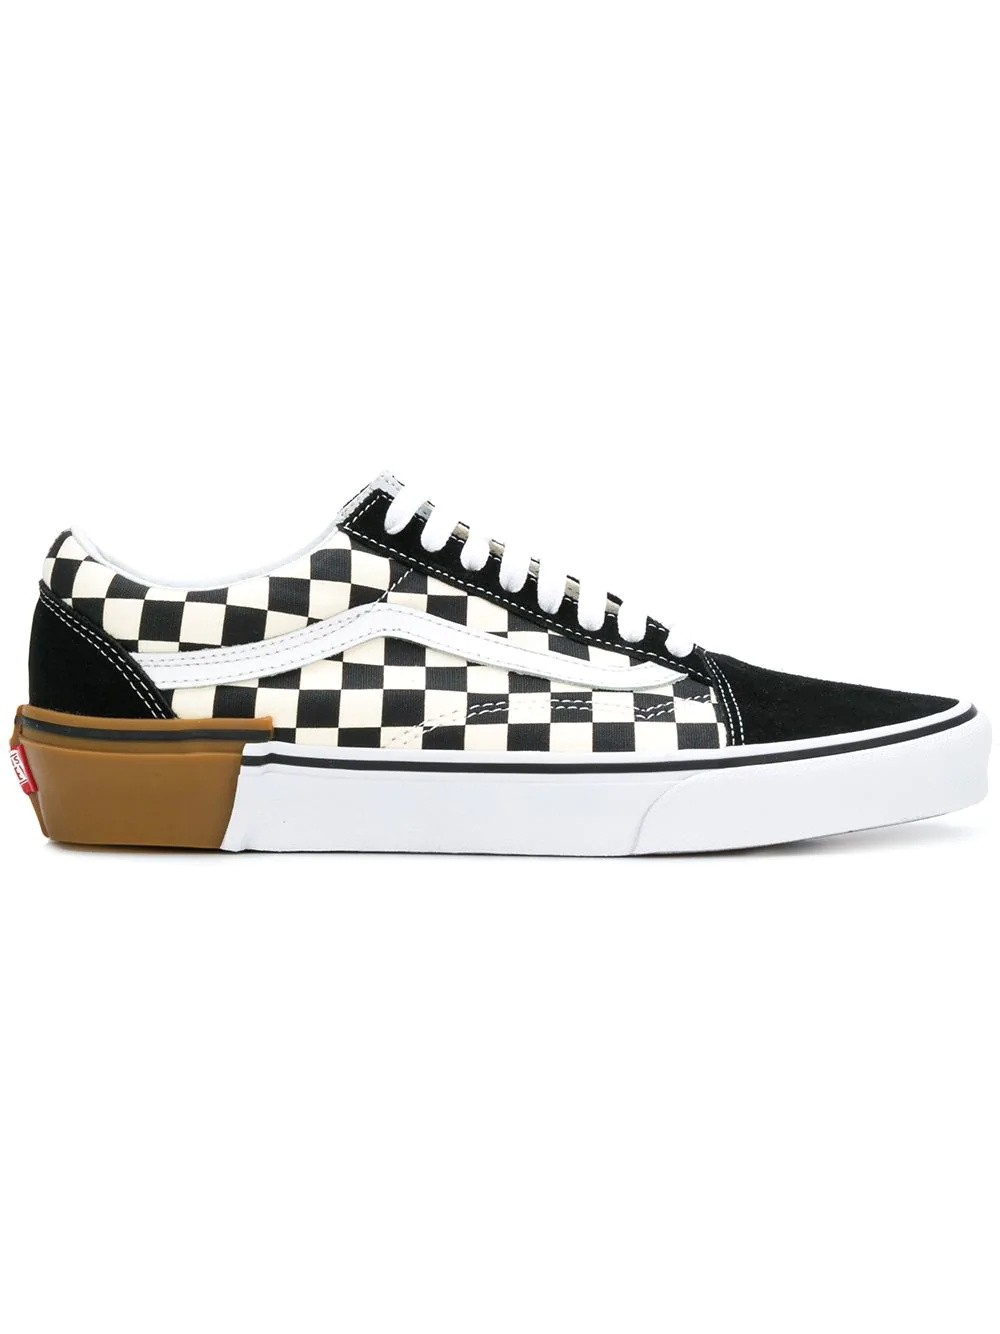 Vans Gum Block Old School Check Sneakers Negras VA38G1U58